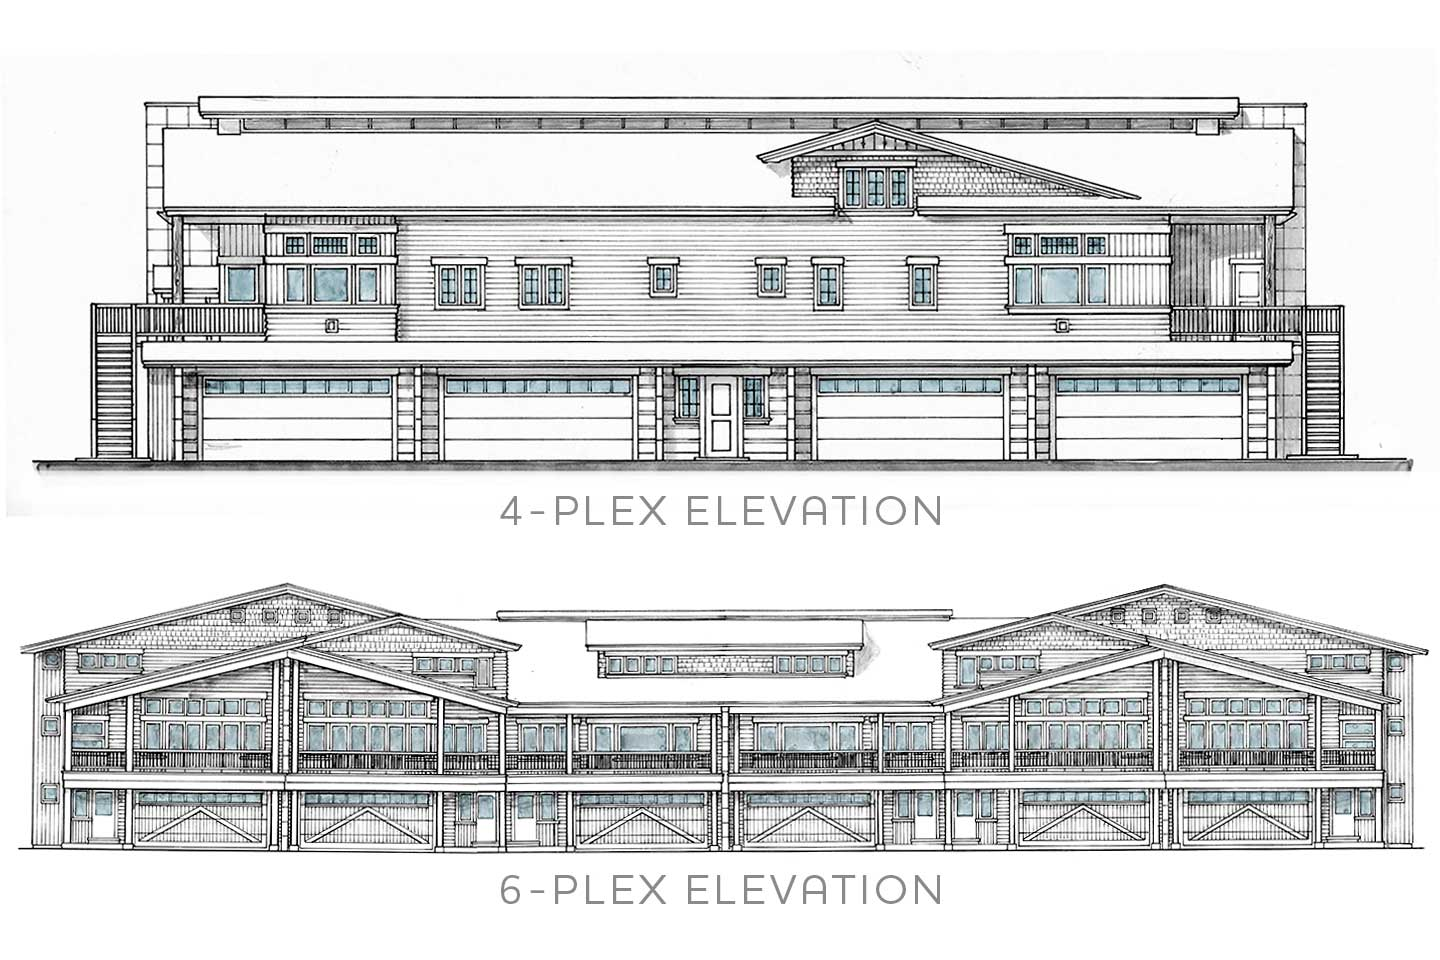 Two complex types elevation plans